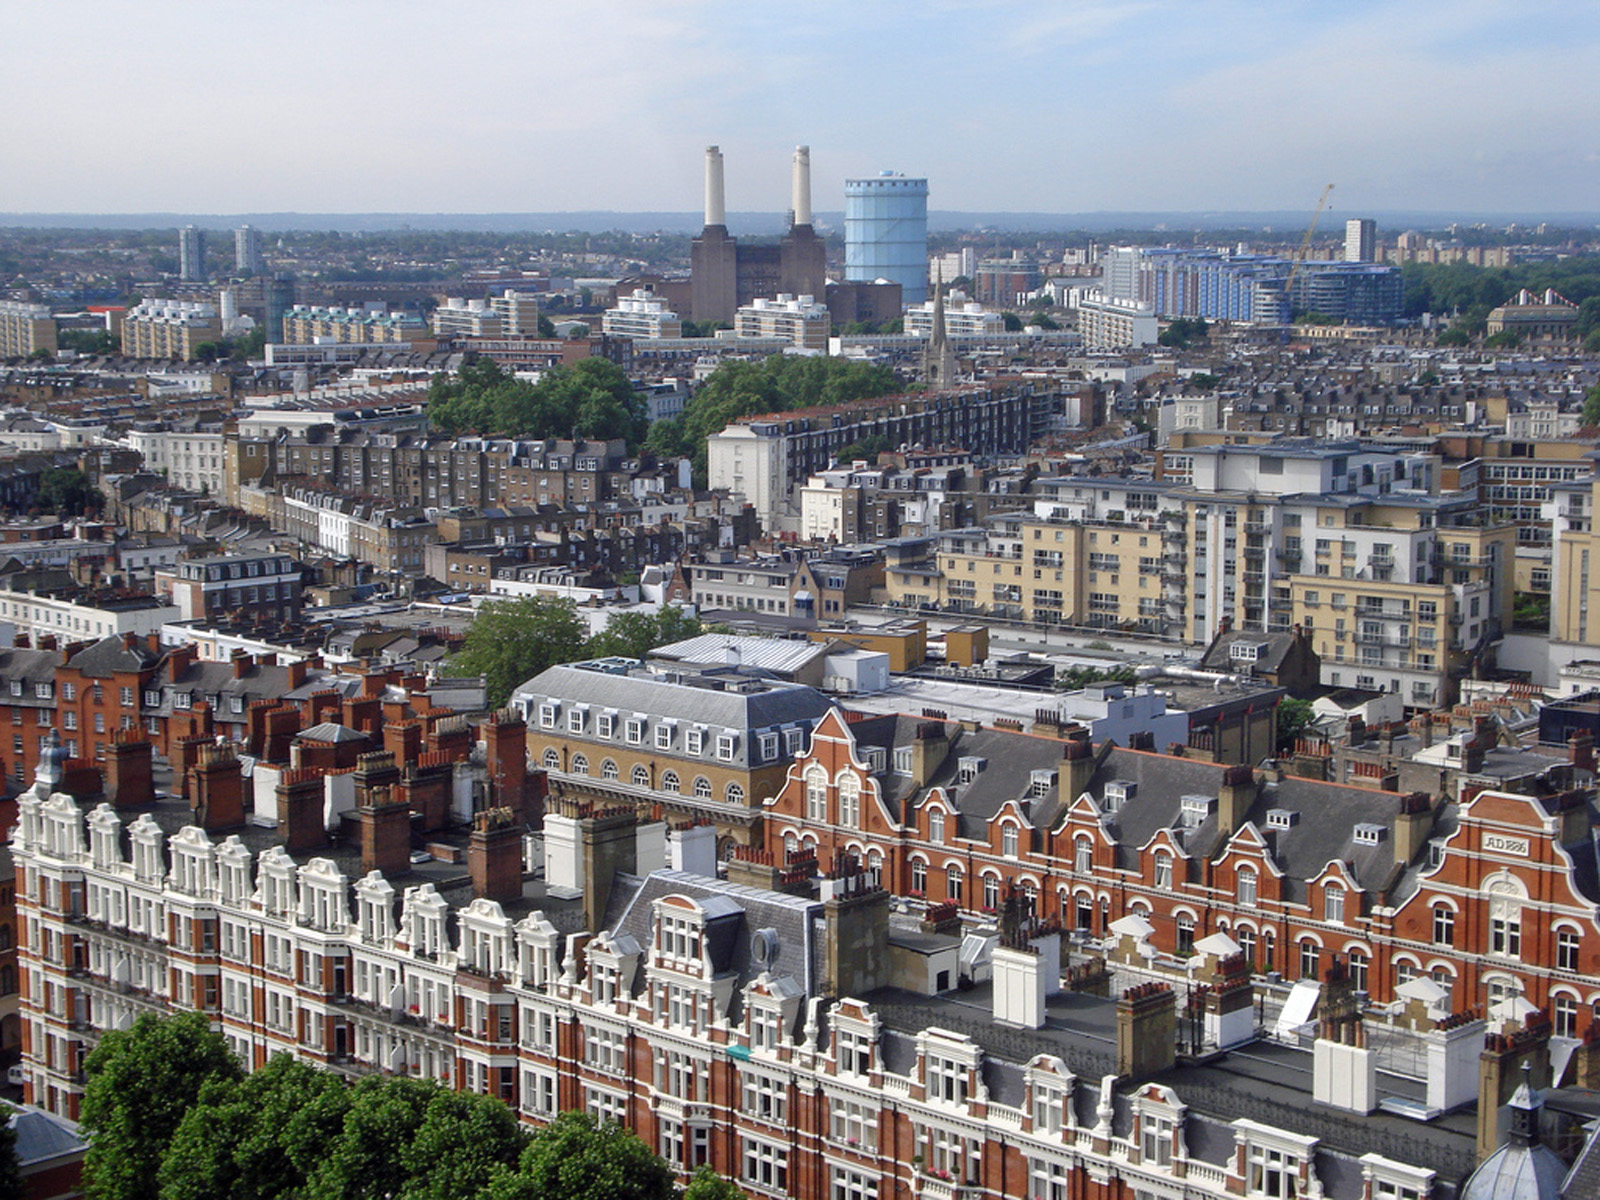 The view from Westminster Cathedral. London. England